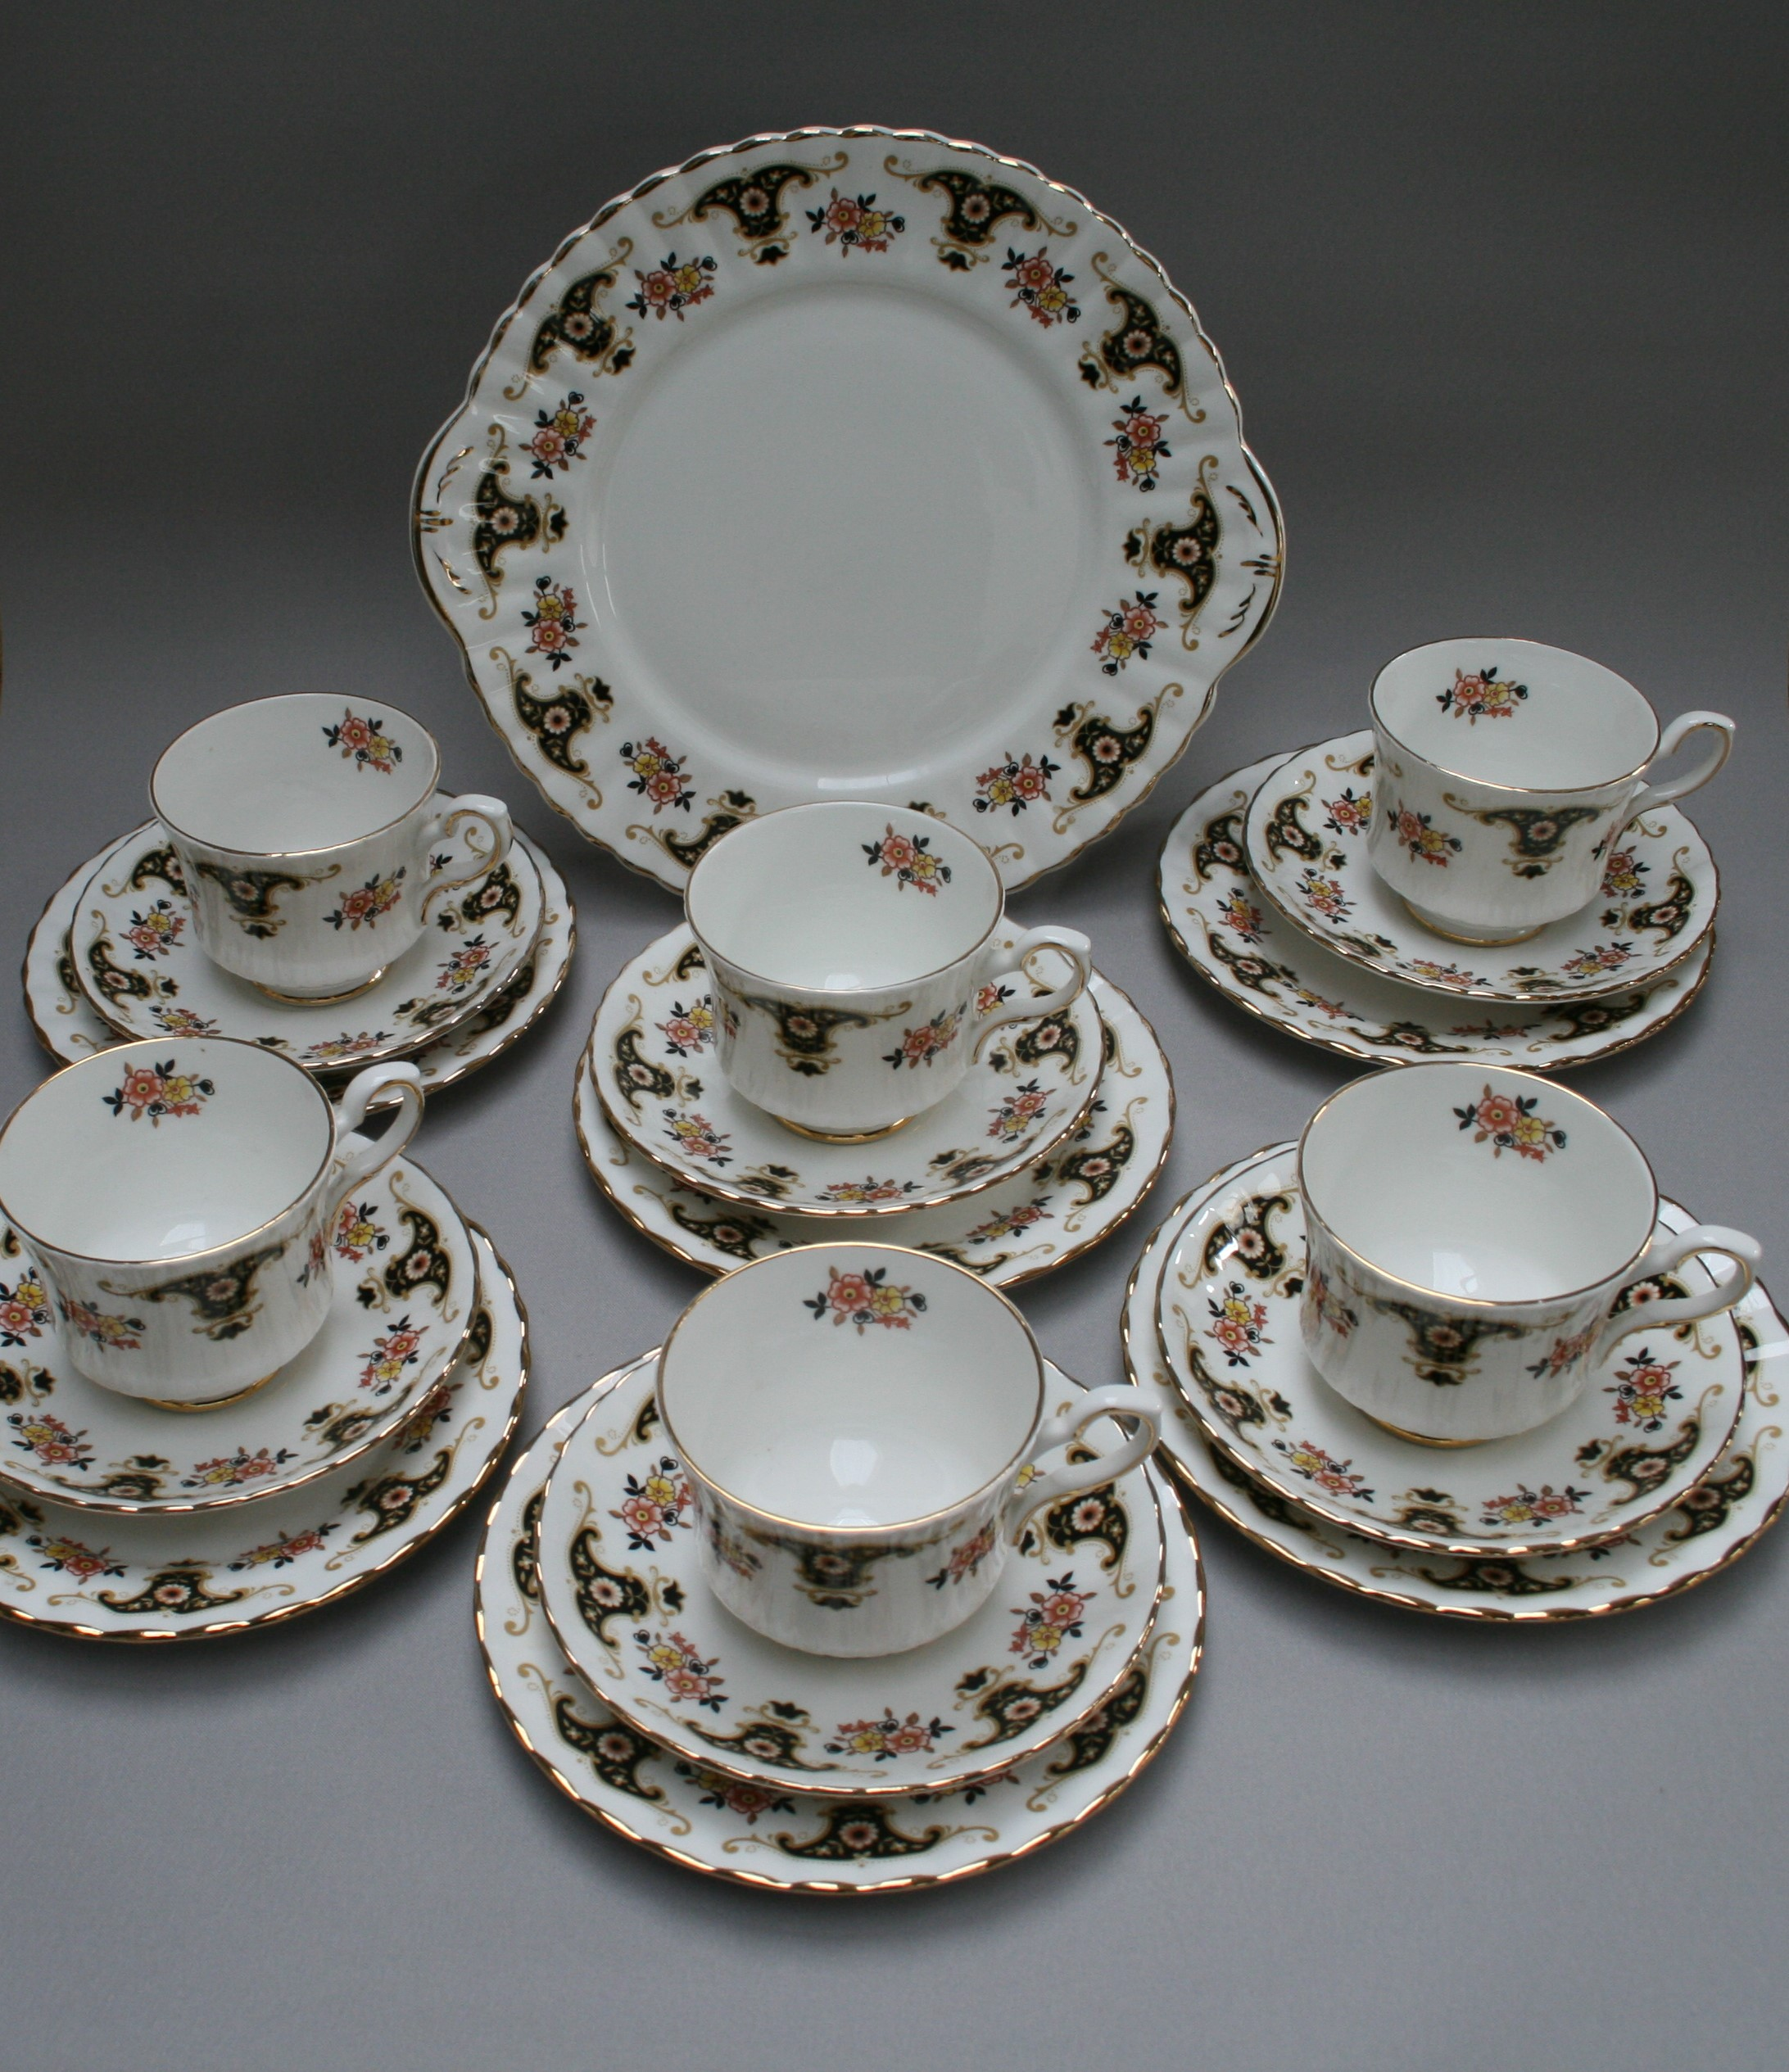 This product is available for sale at Williams Antiques serving Bedford St.Neots and Cambridge. & An antique Royal Stafford Bone China \u0027Balmoral design\u0027 tea set